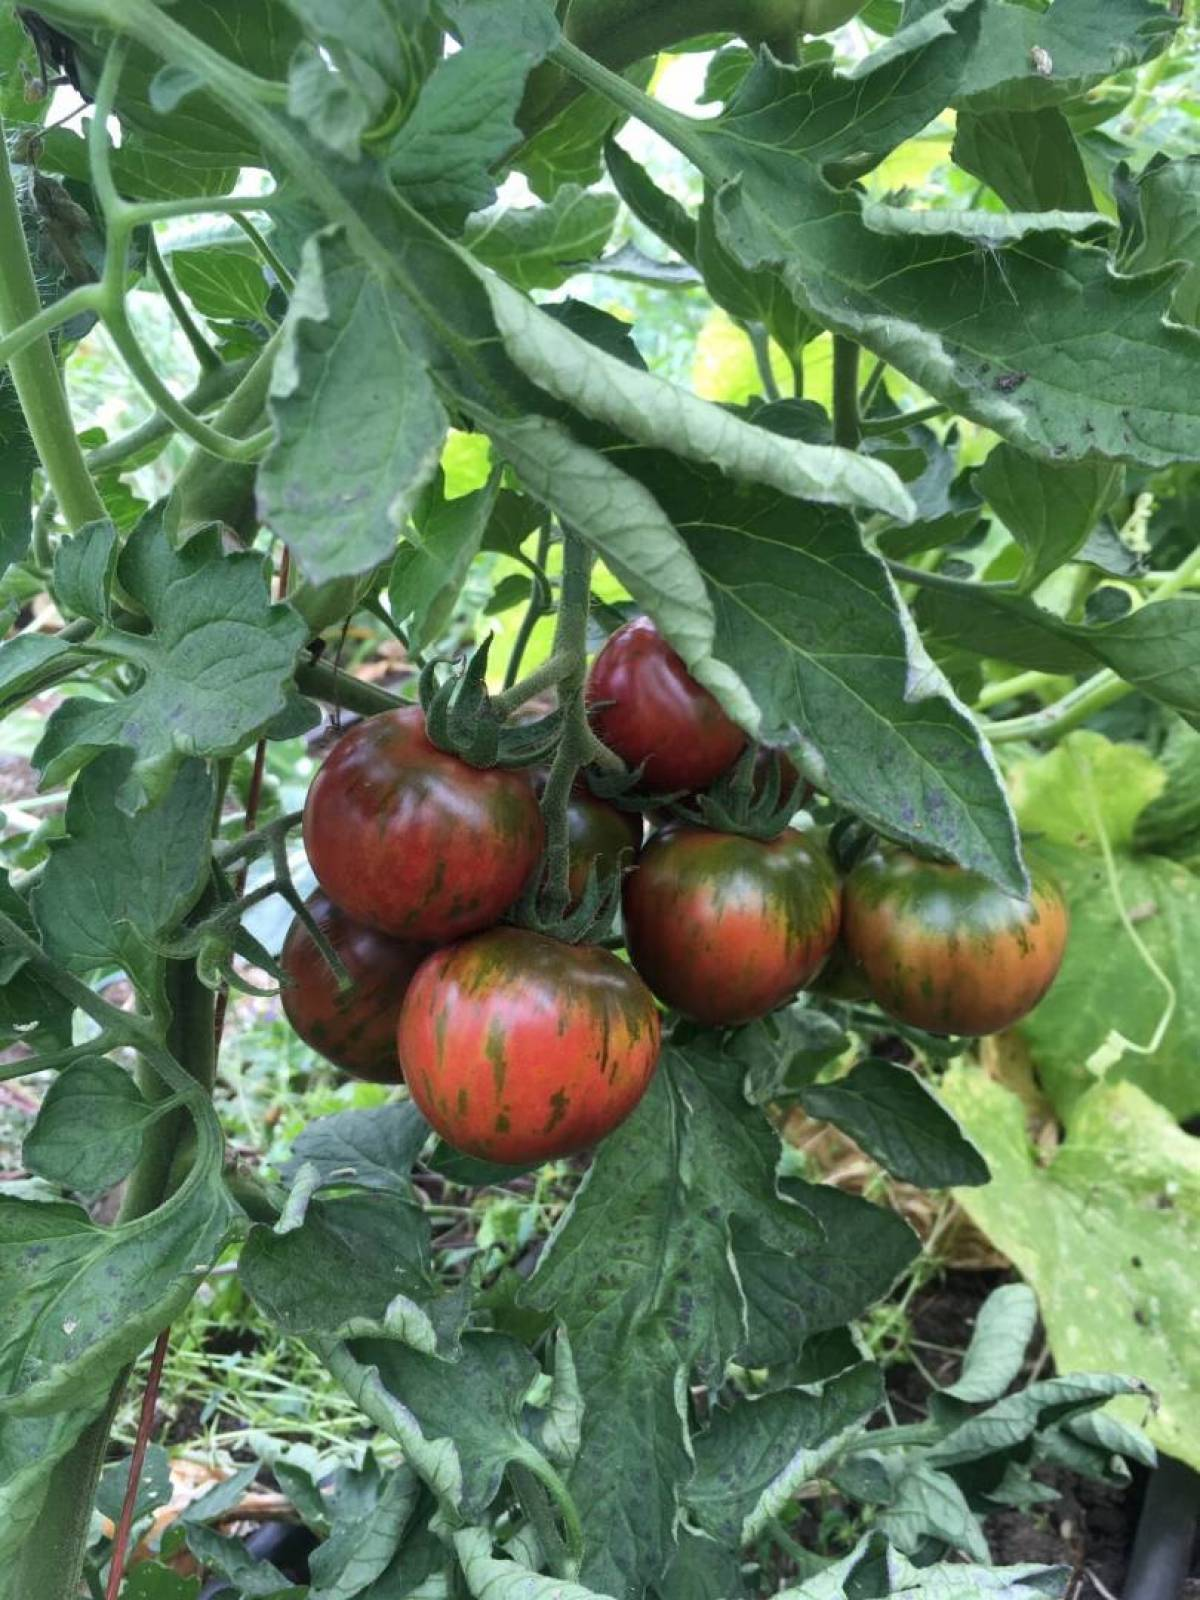 COVID-19: Food security grows by knowing where your seeds come from